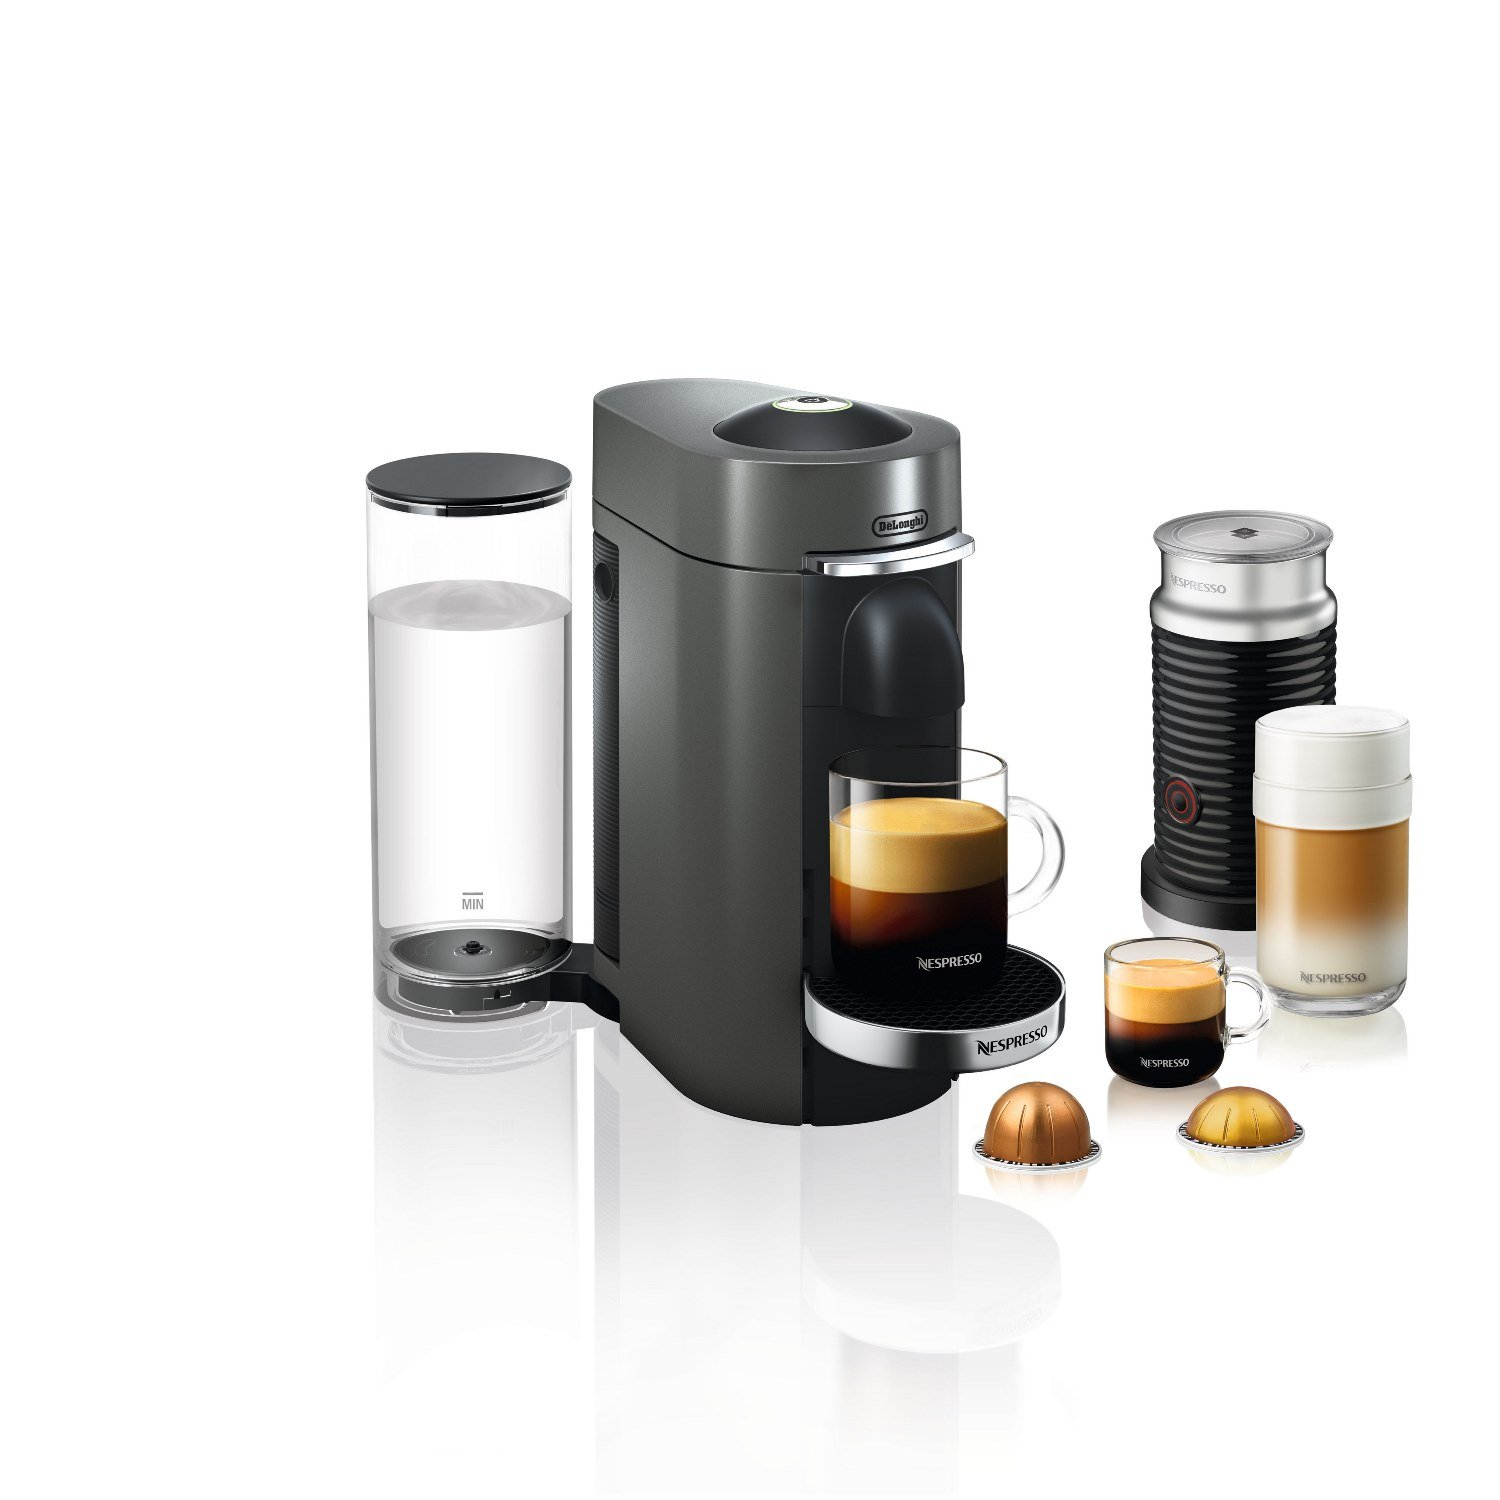 Delonghi ENV155TAECA Nespresso Vertuo Plus Deluxe Coffee and Espresso Maker by De'Longhi with Aeroccino, Titan